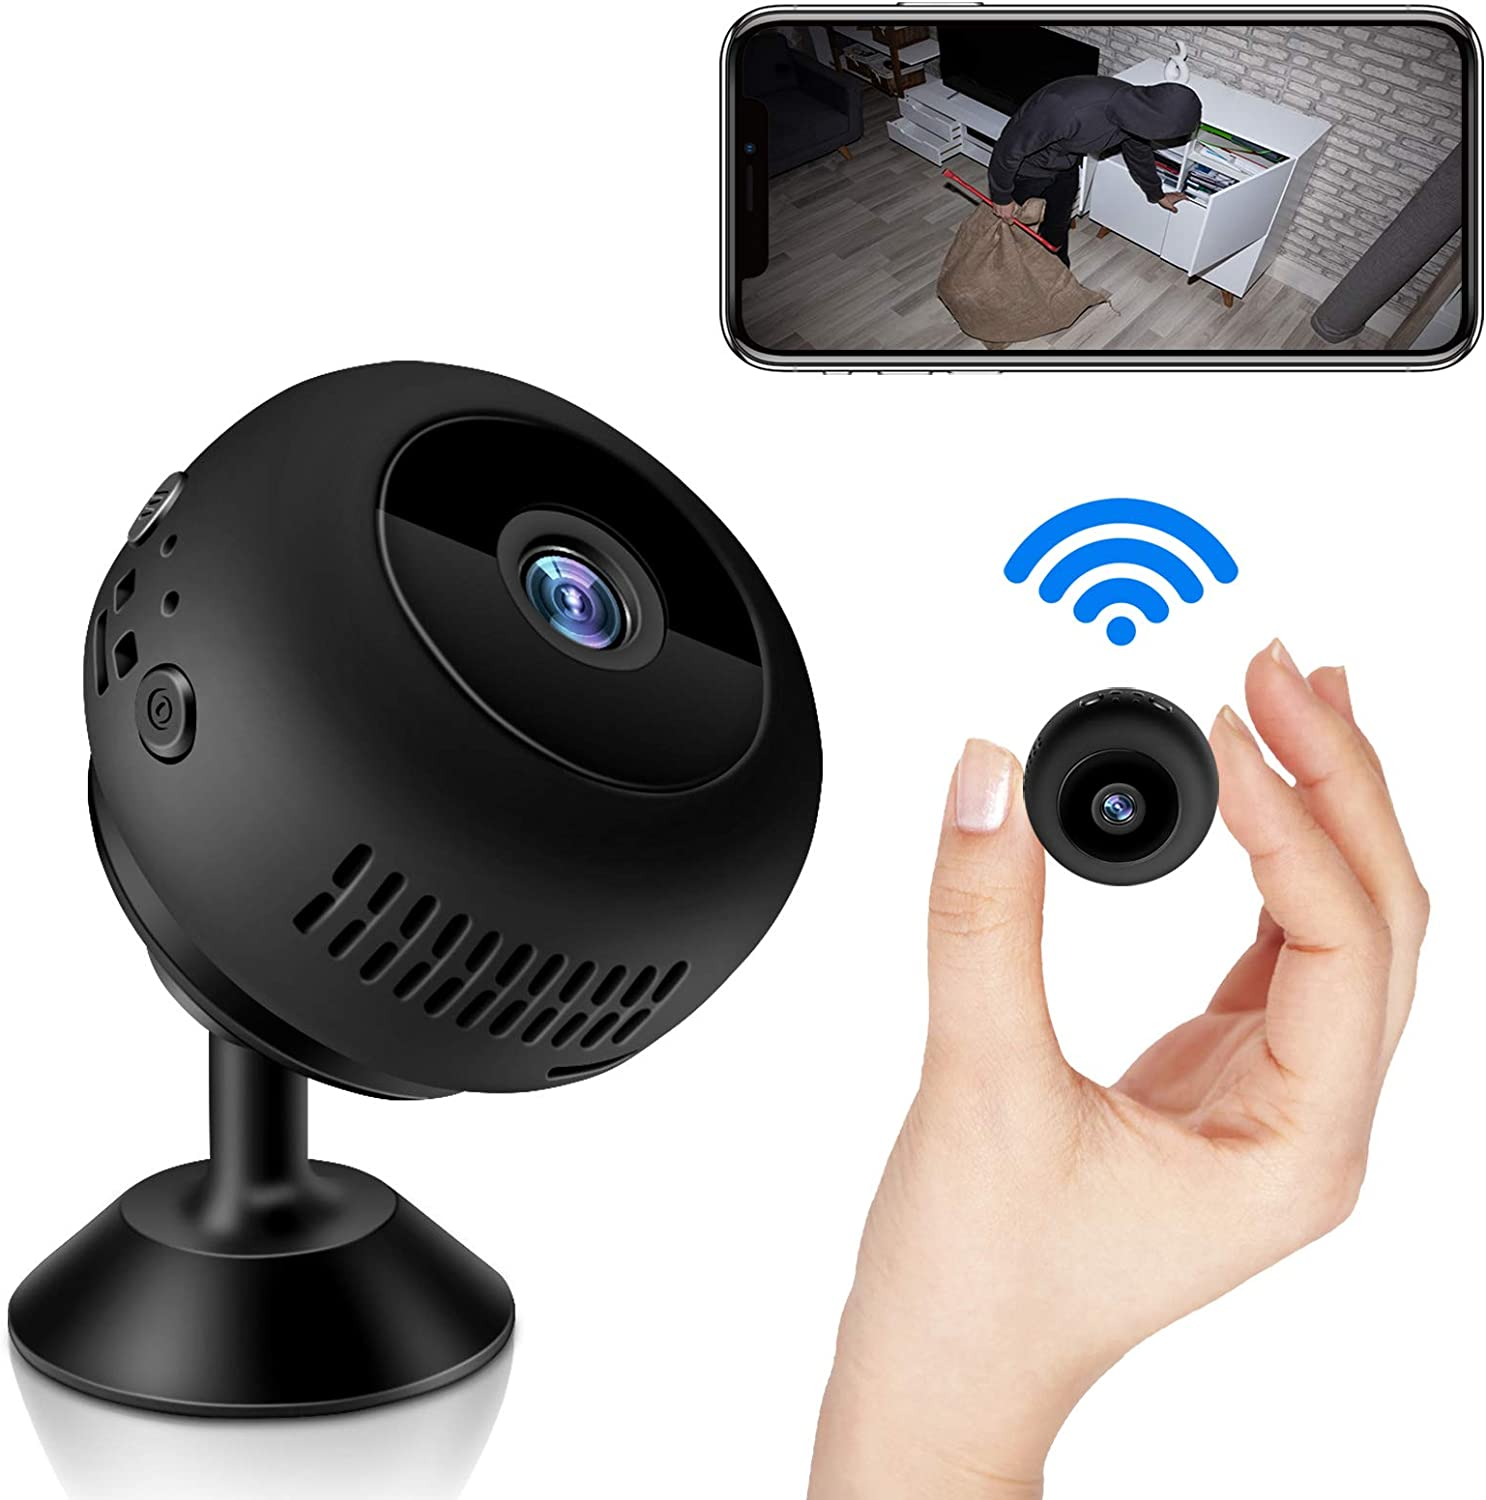 Mini Spy Camera, WiFi Wireless Hidden Camera 1080P Full HD, Portable Home Security Tiny Nanny Cam with Night Vision Motion Detection for Car Indoor Outdoor